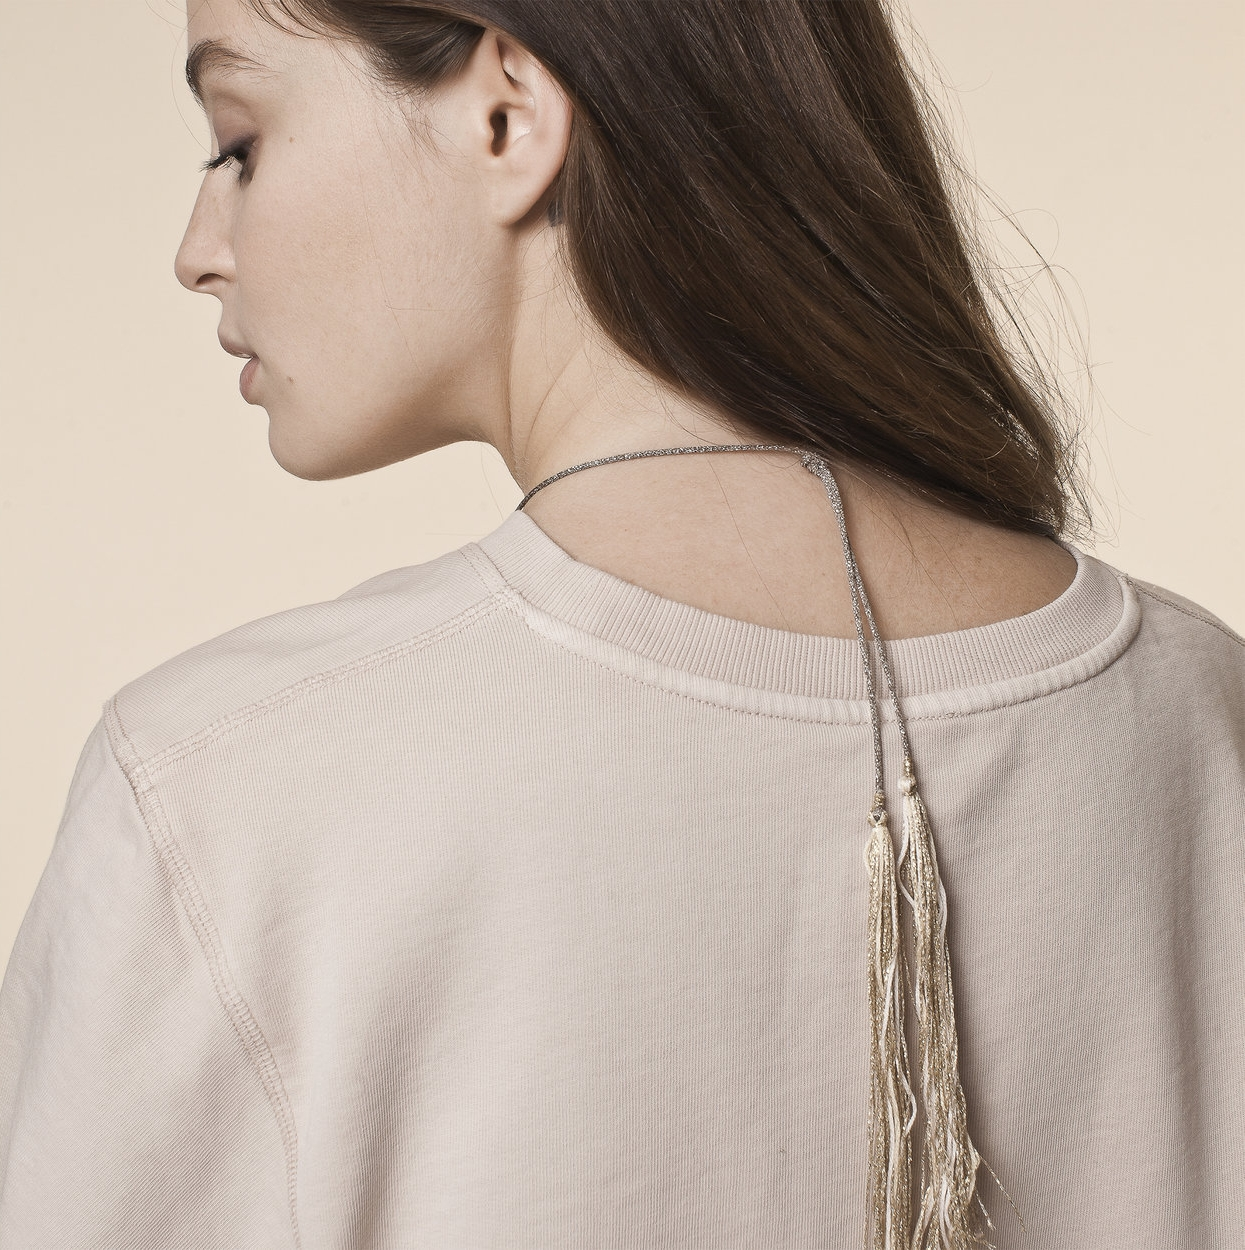 back of the Joy pregnancy cord necklace from Ilado paris